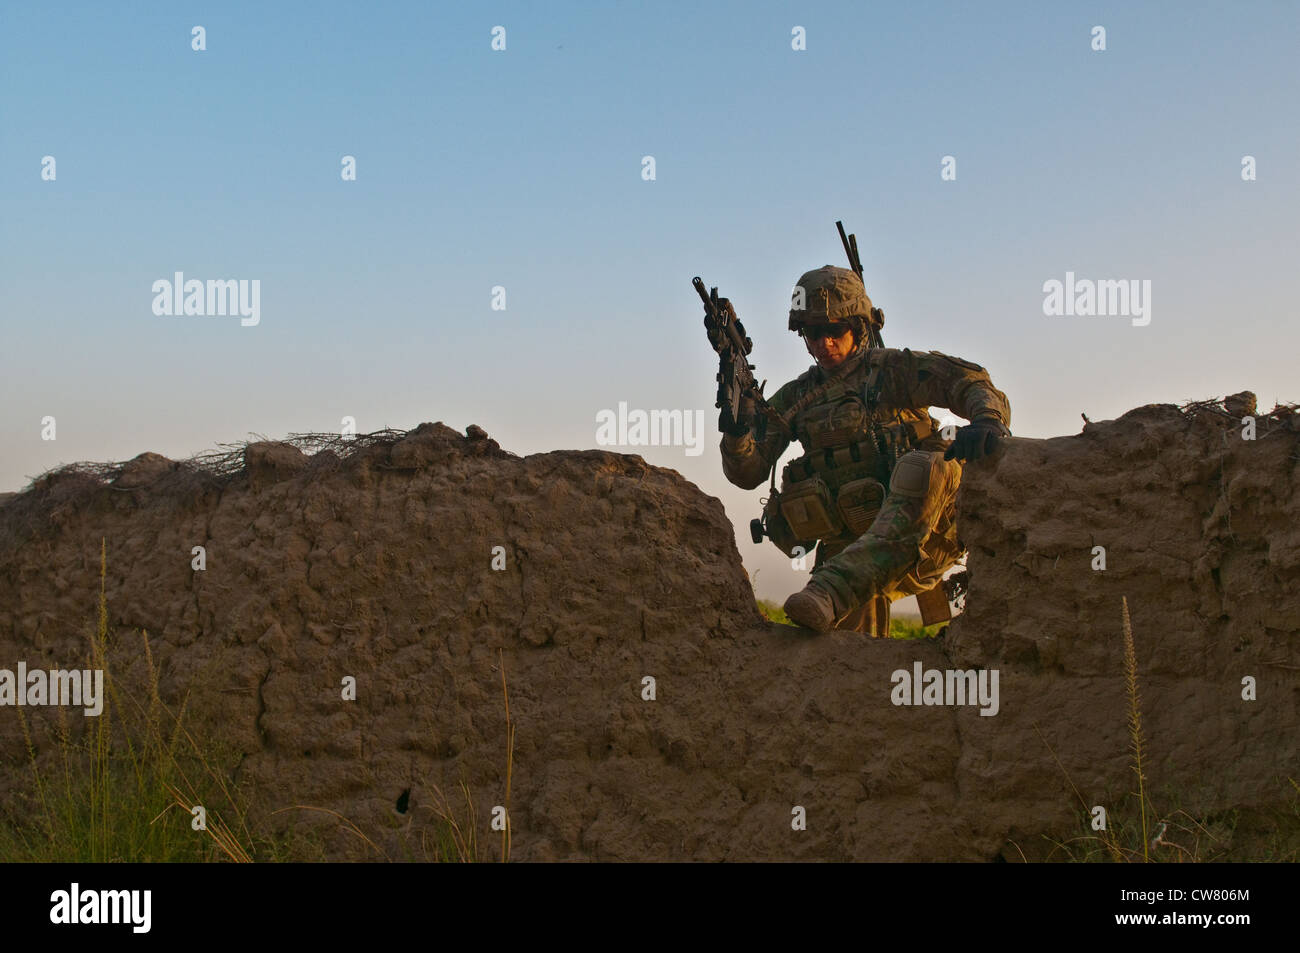 Pfc. Rodney Heater a soldier with 2nd Platoon, Apache Company, 1st Battalion, 23rd Infantry Regiment, makes his - Stock Image